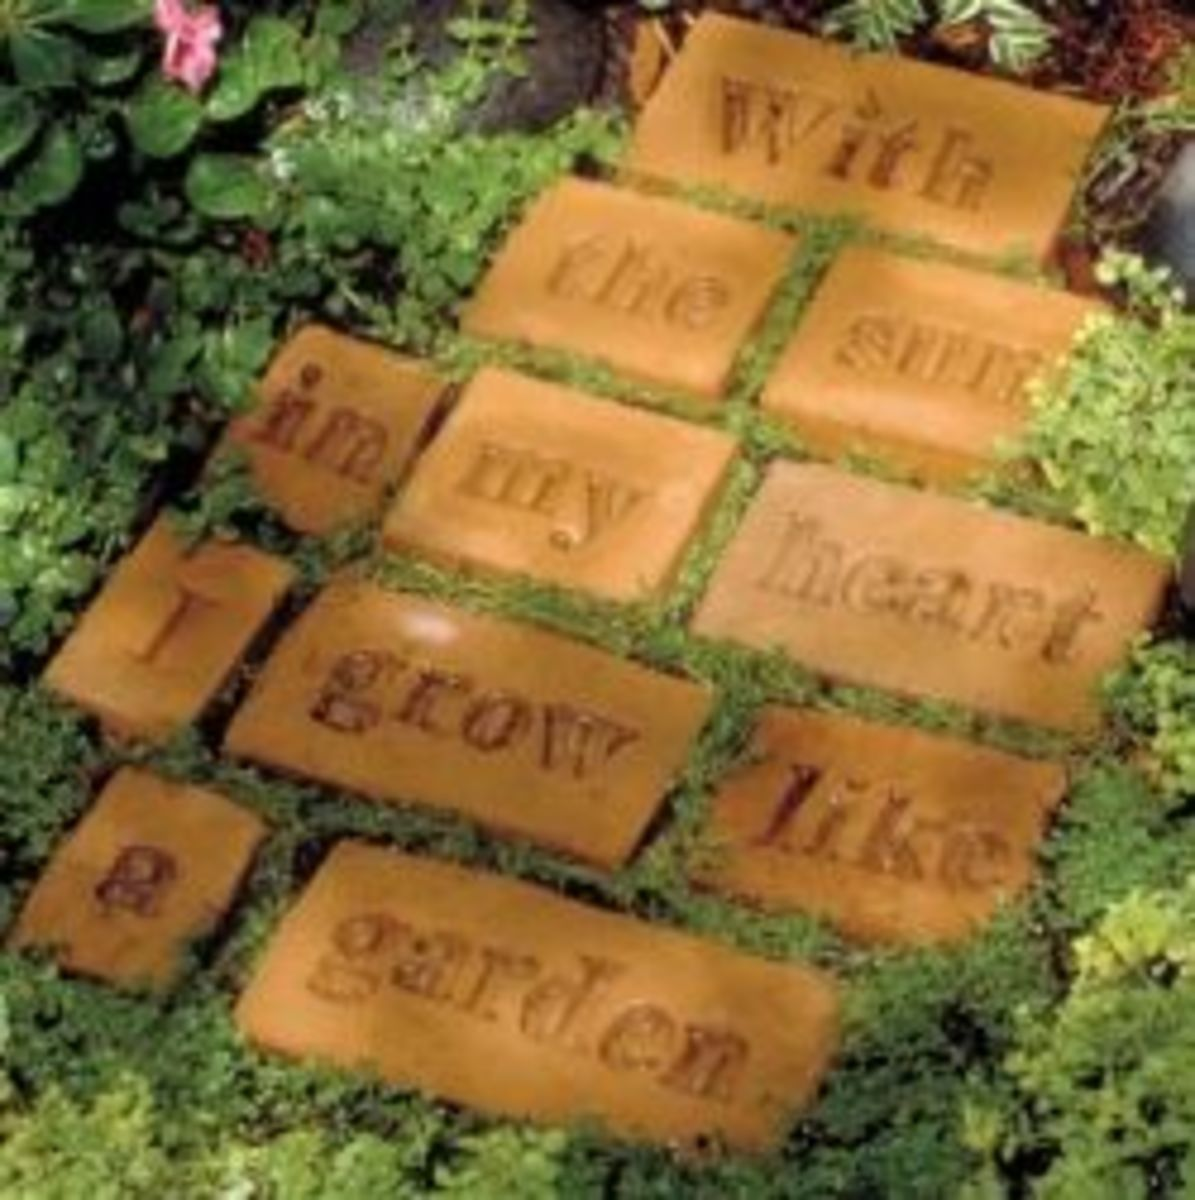 You can make a garden poem or use your favorite quotation with these bricks.